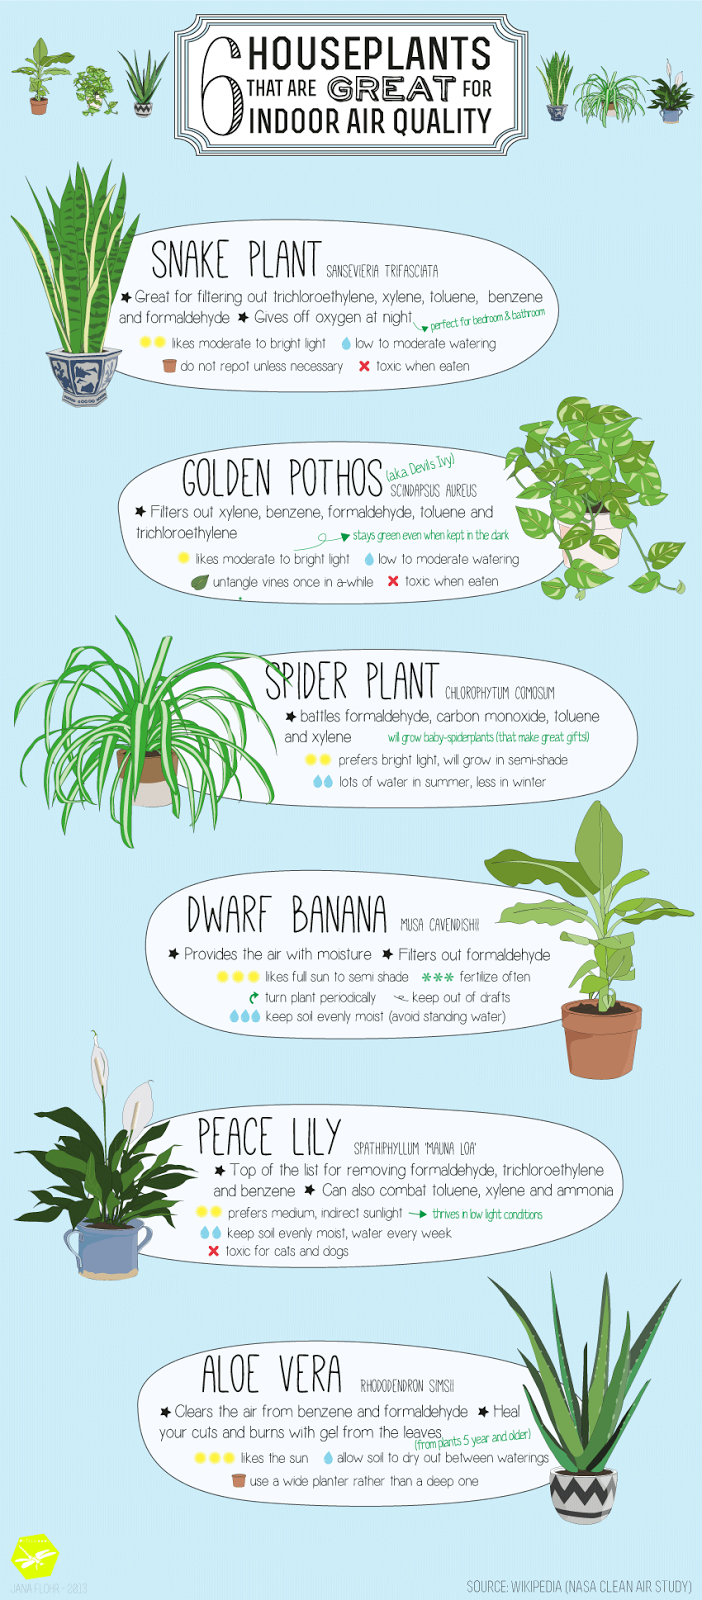 house of thol: 6 Houseplants that are great for indoor air ...